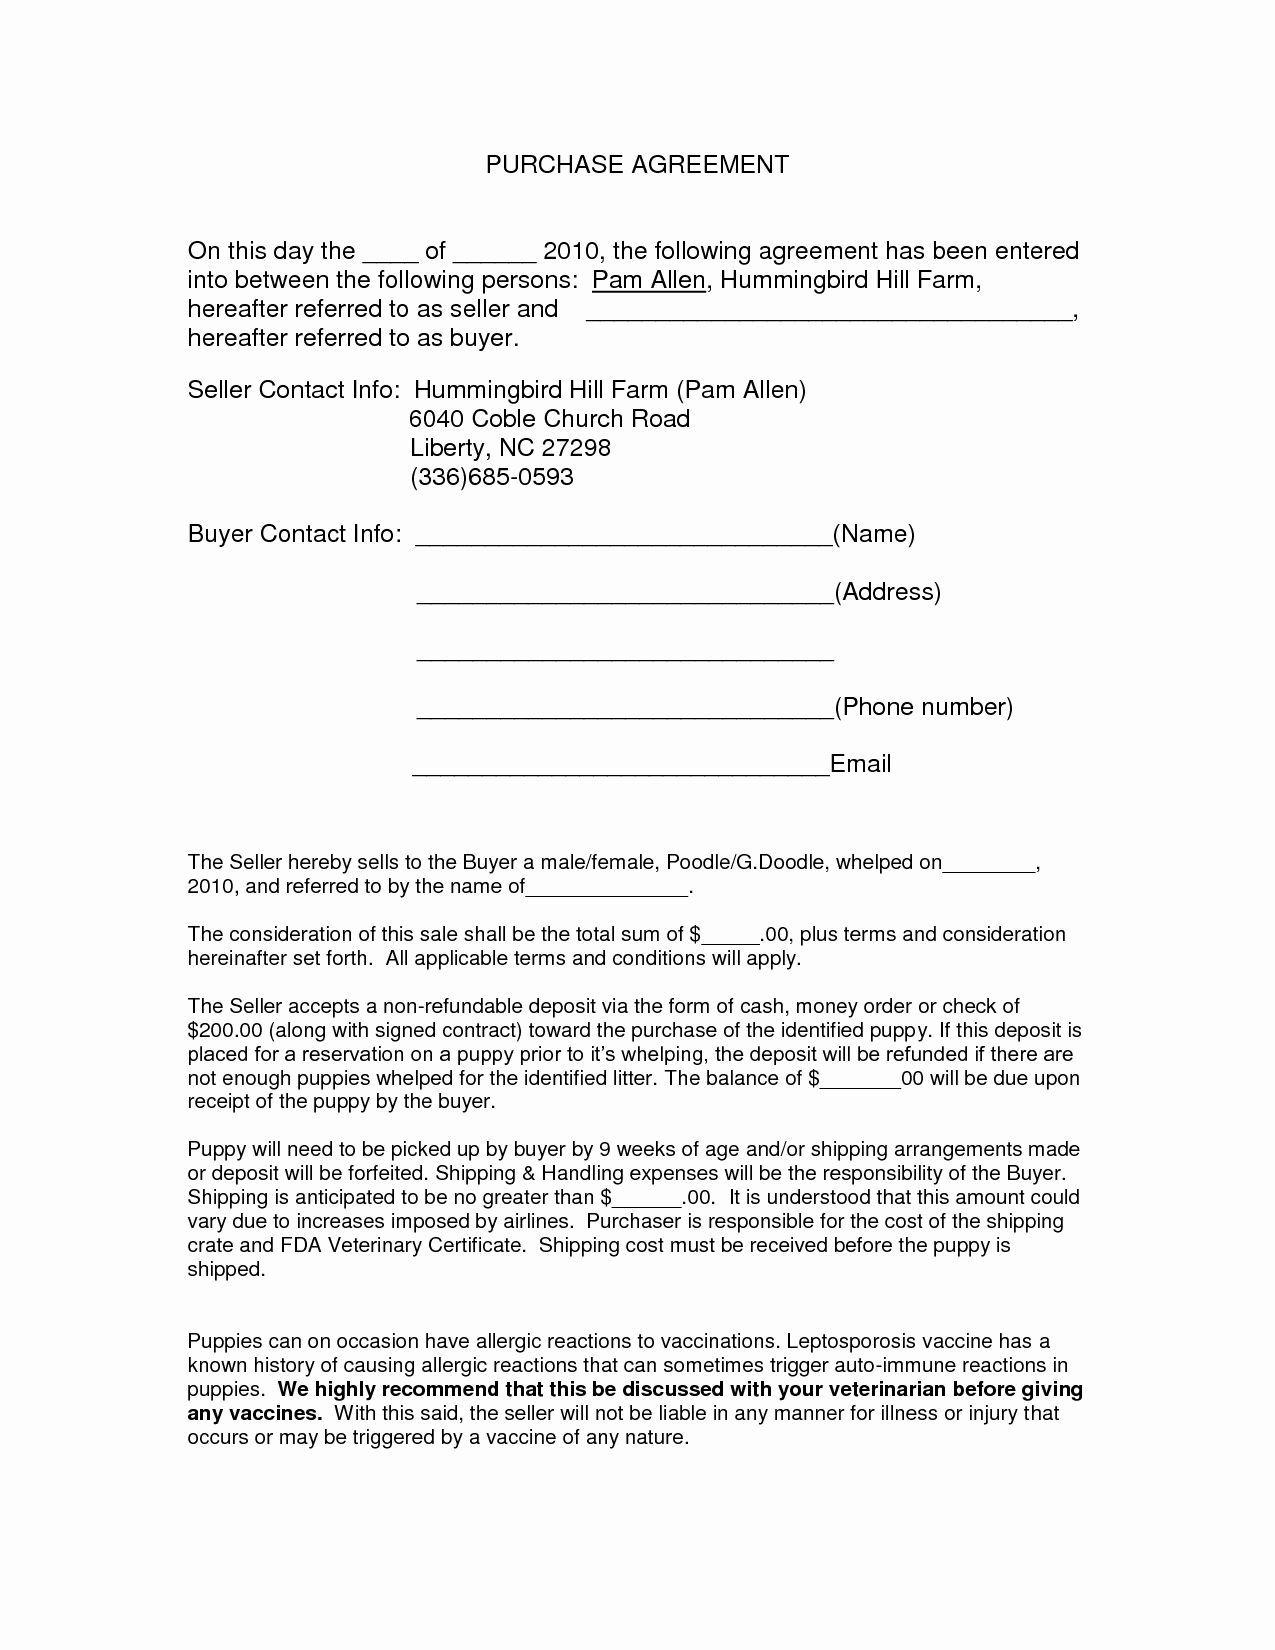 Car Deposit Agreement Lovely Auto Purchase Agreement Form Doc By Nyy Purchase Purchase Agreement Contract Template Car Purchase